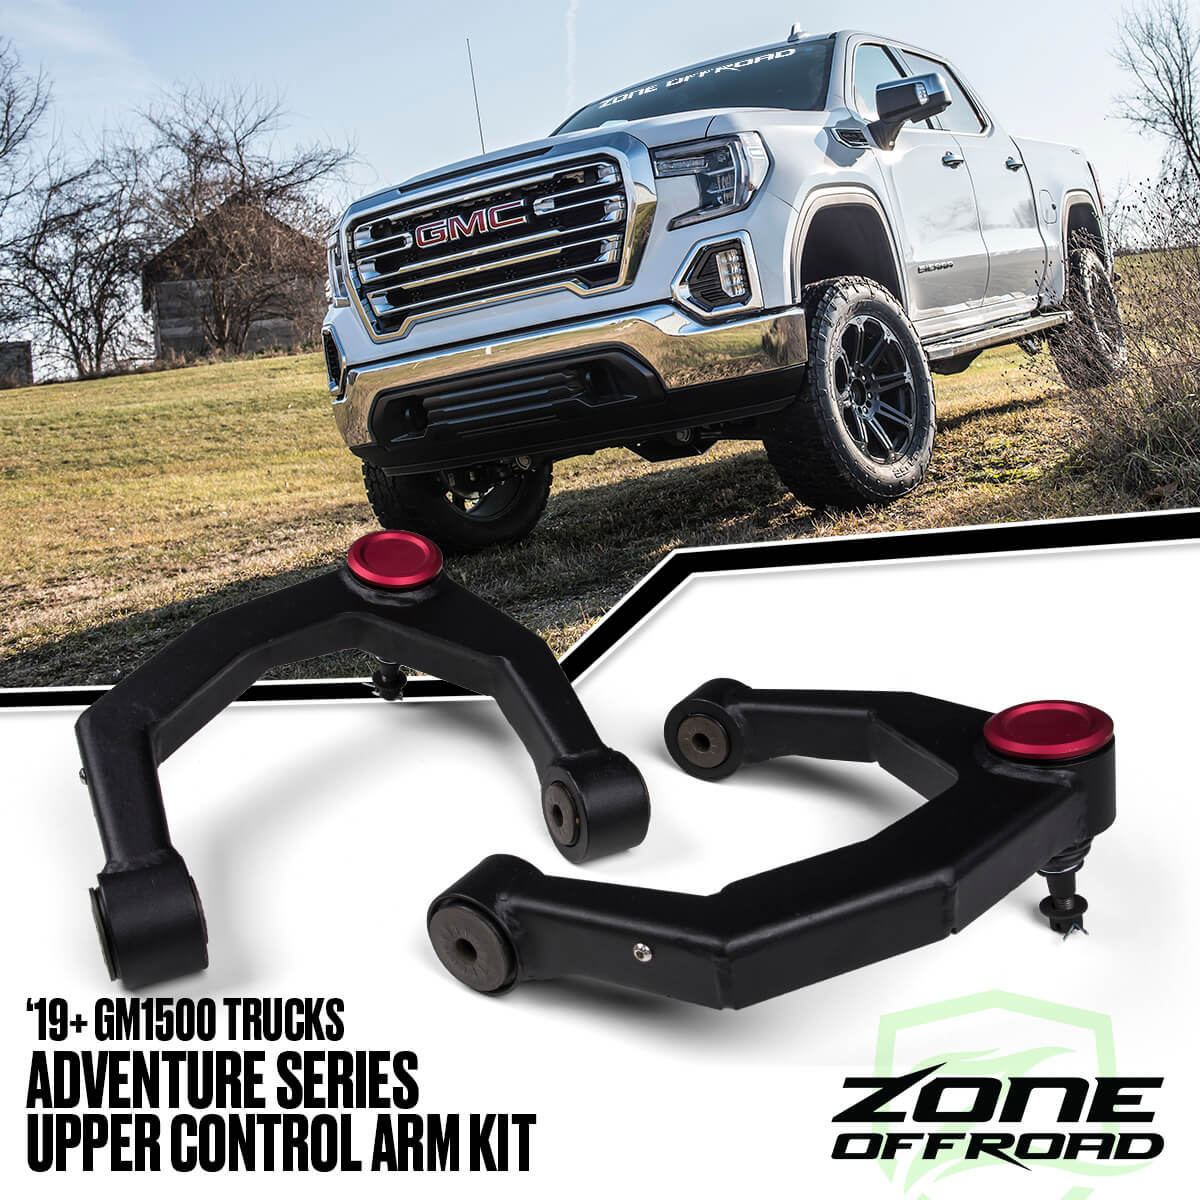 Adventure Series UCA Kit for 2019-2020 Chevy/GMC 1500 Trucks from Zone Offroad